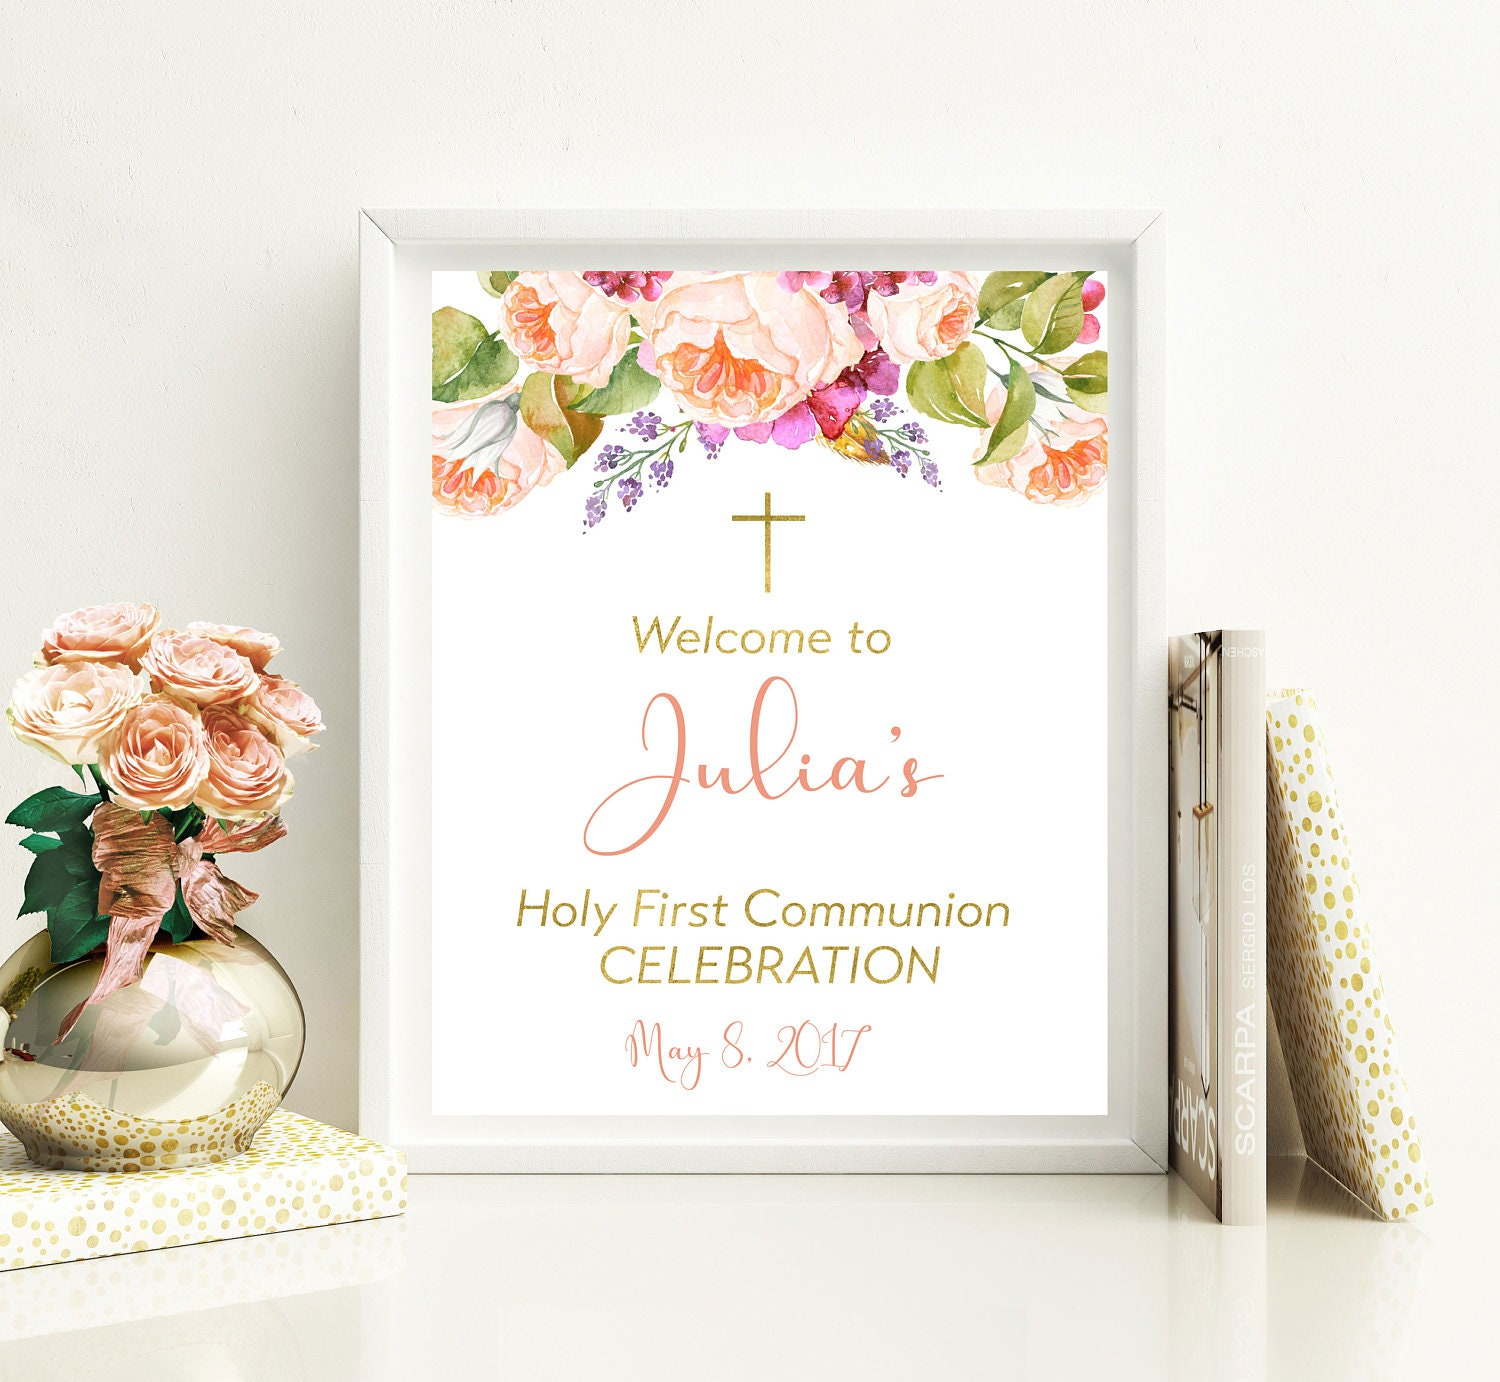 Holy First Communion Welcome Sign Baptism Sign Instant. Payday Loan No Checking Account Needed. Online Backup Solutions For Business. Screen Recording Application. Business Credit Cards Using Ein Only. Why Is Car Insurance So Expensive. Employee Performance Reviews. The Fast Car In The World Mold Removal Shower. Acquisition And Development Loan